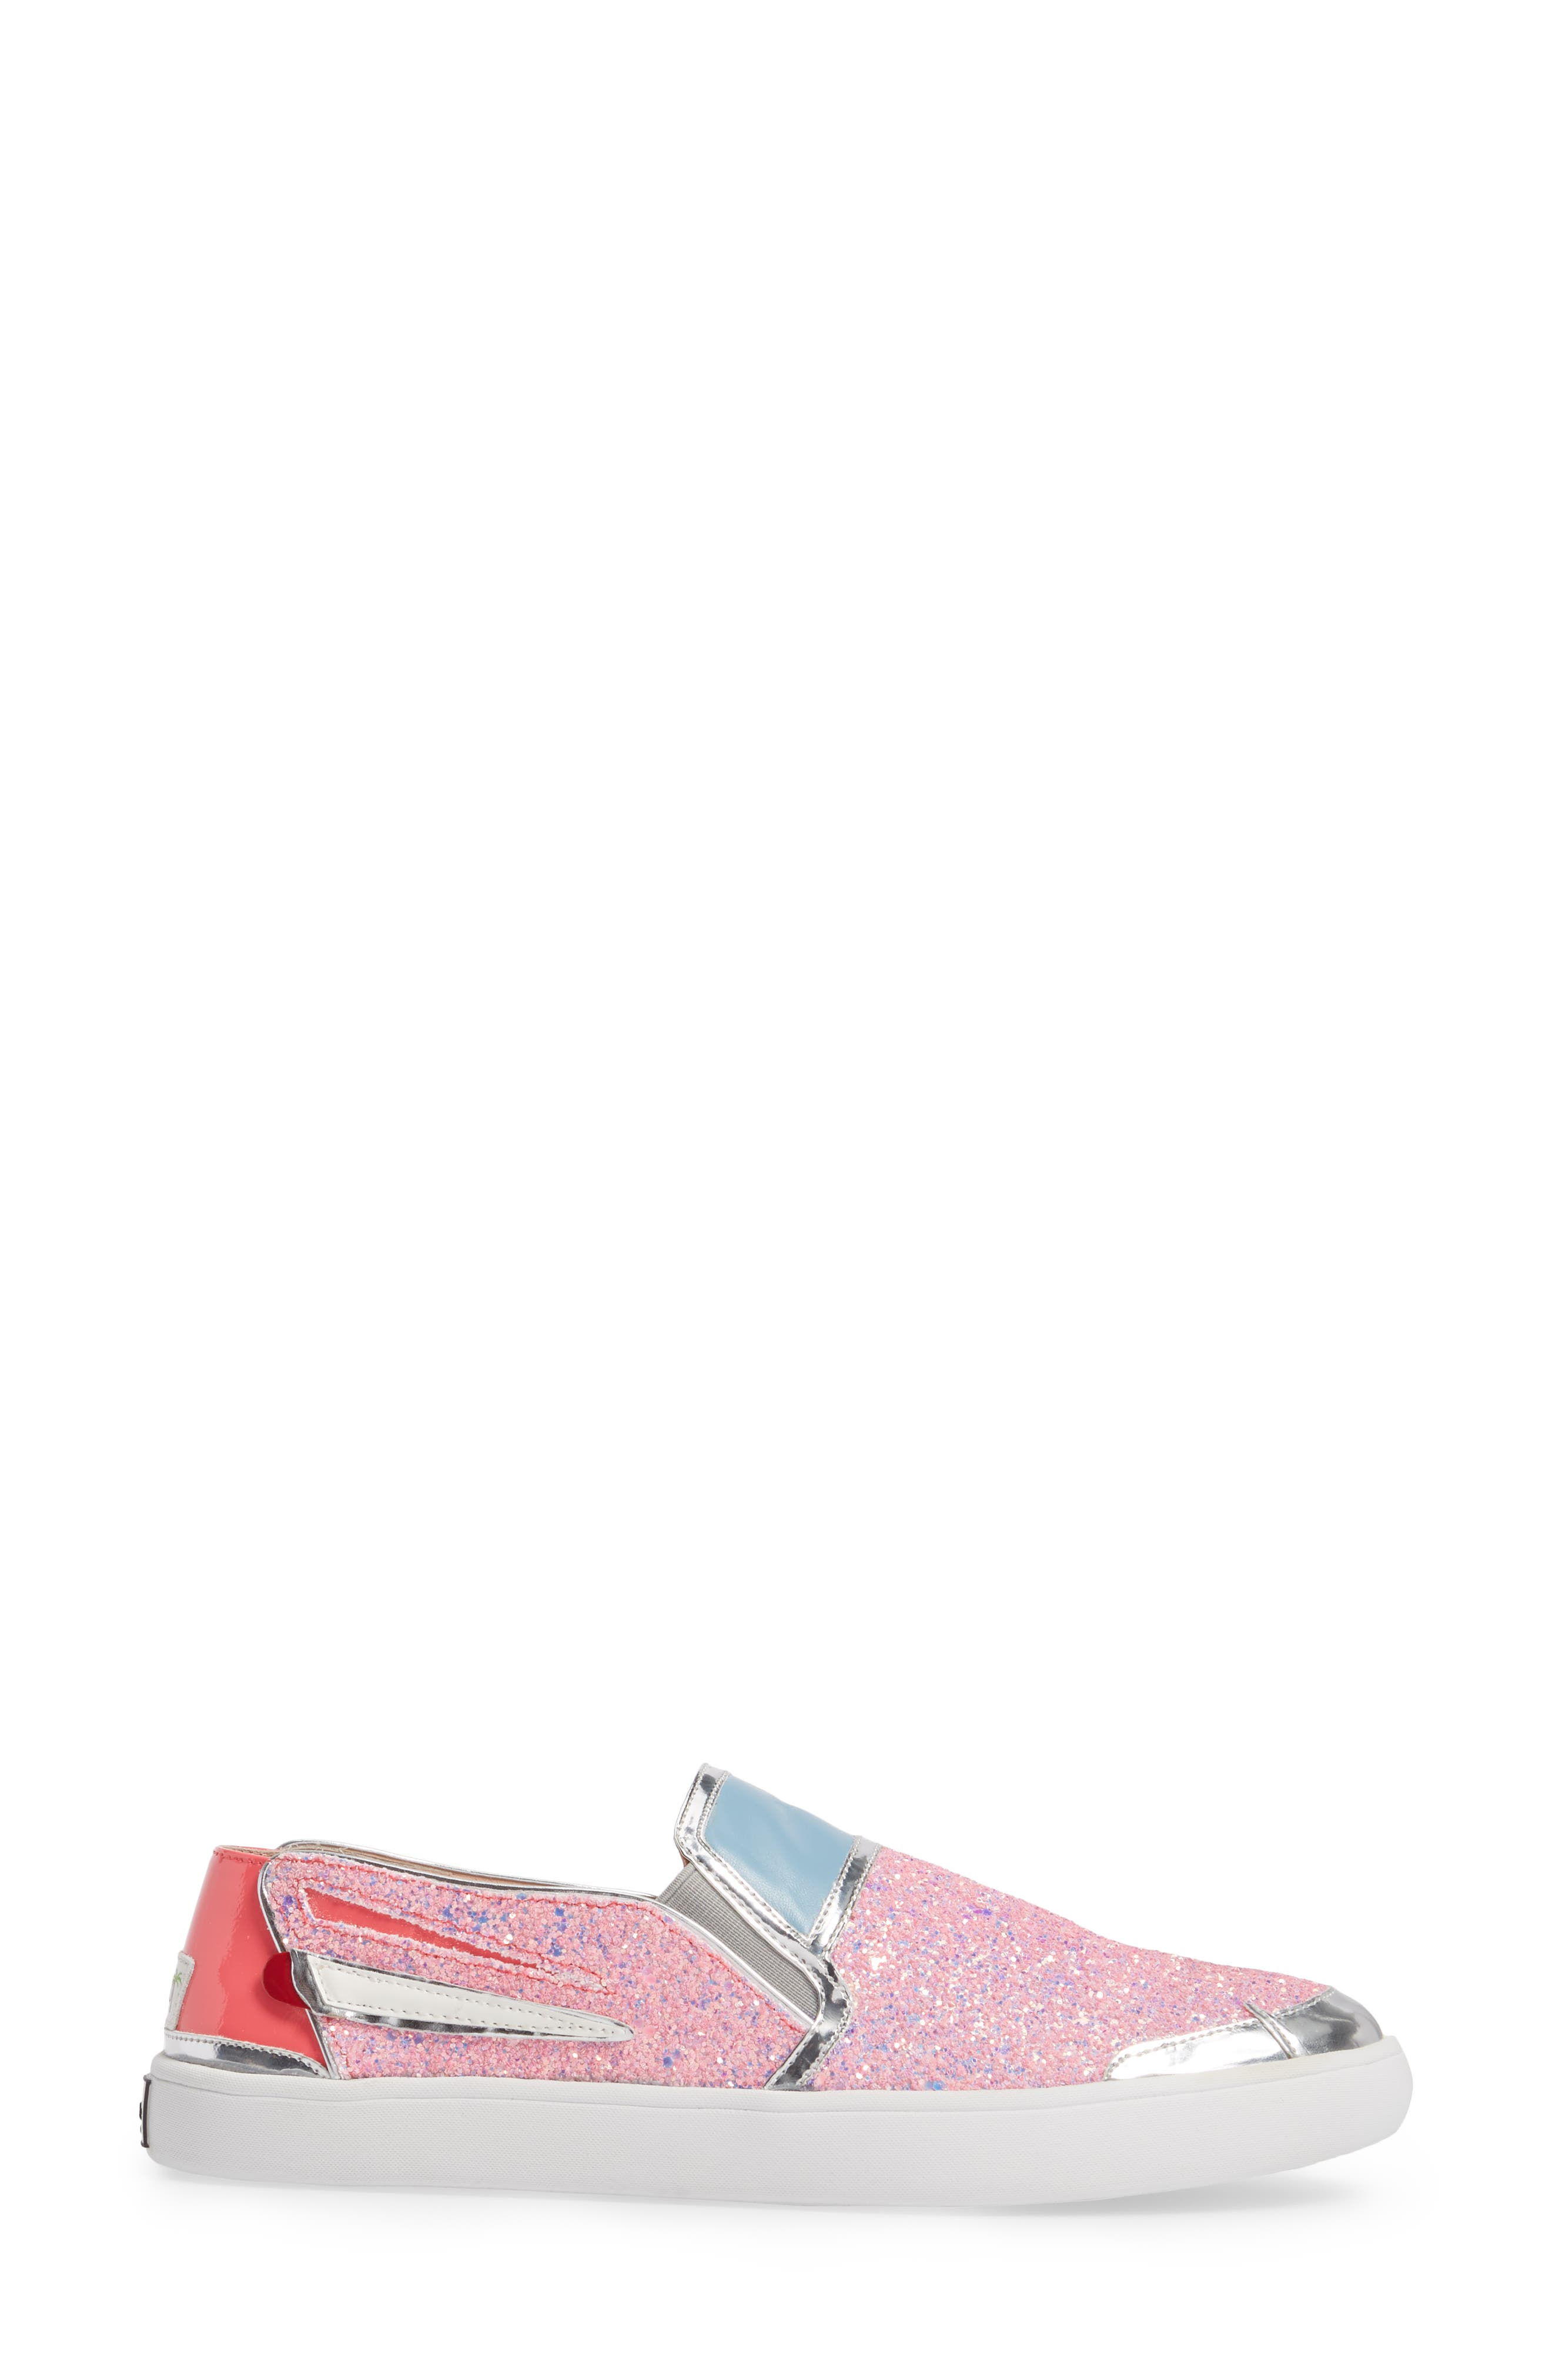 Lotus Slip-On Sneaker,                             Alternate thumbnail 3, color,                             Pink